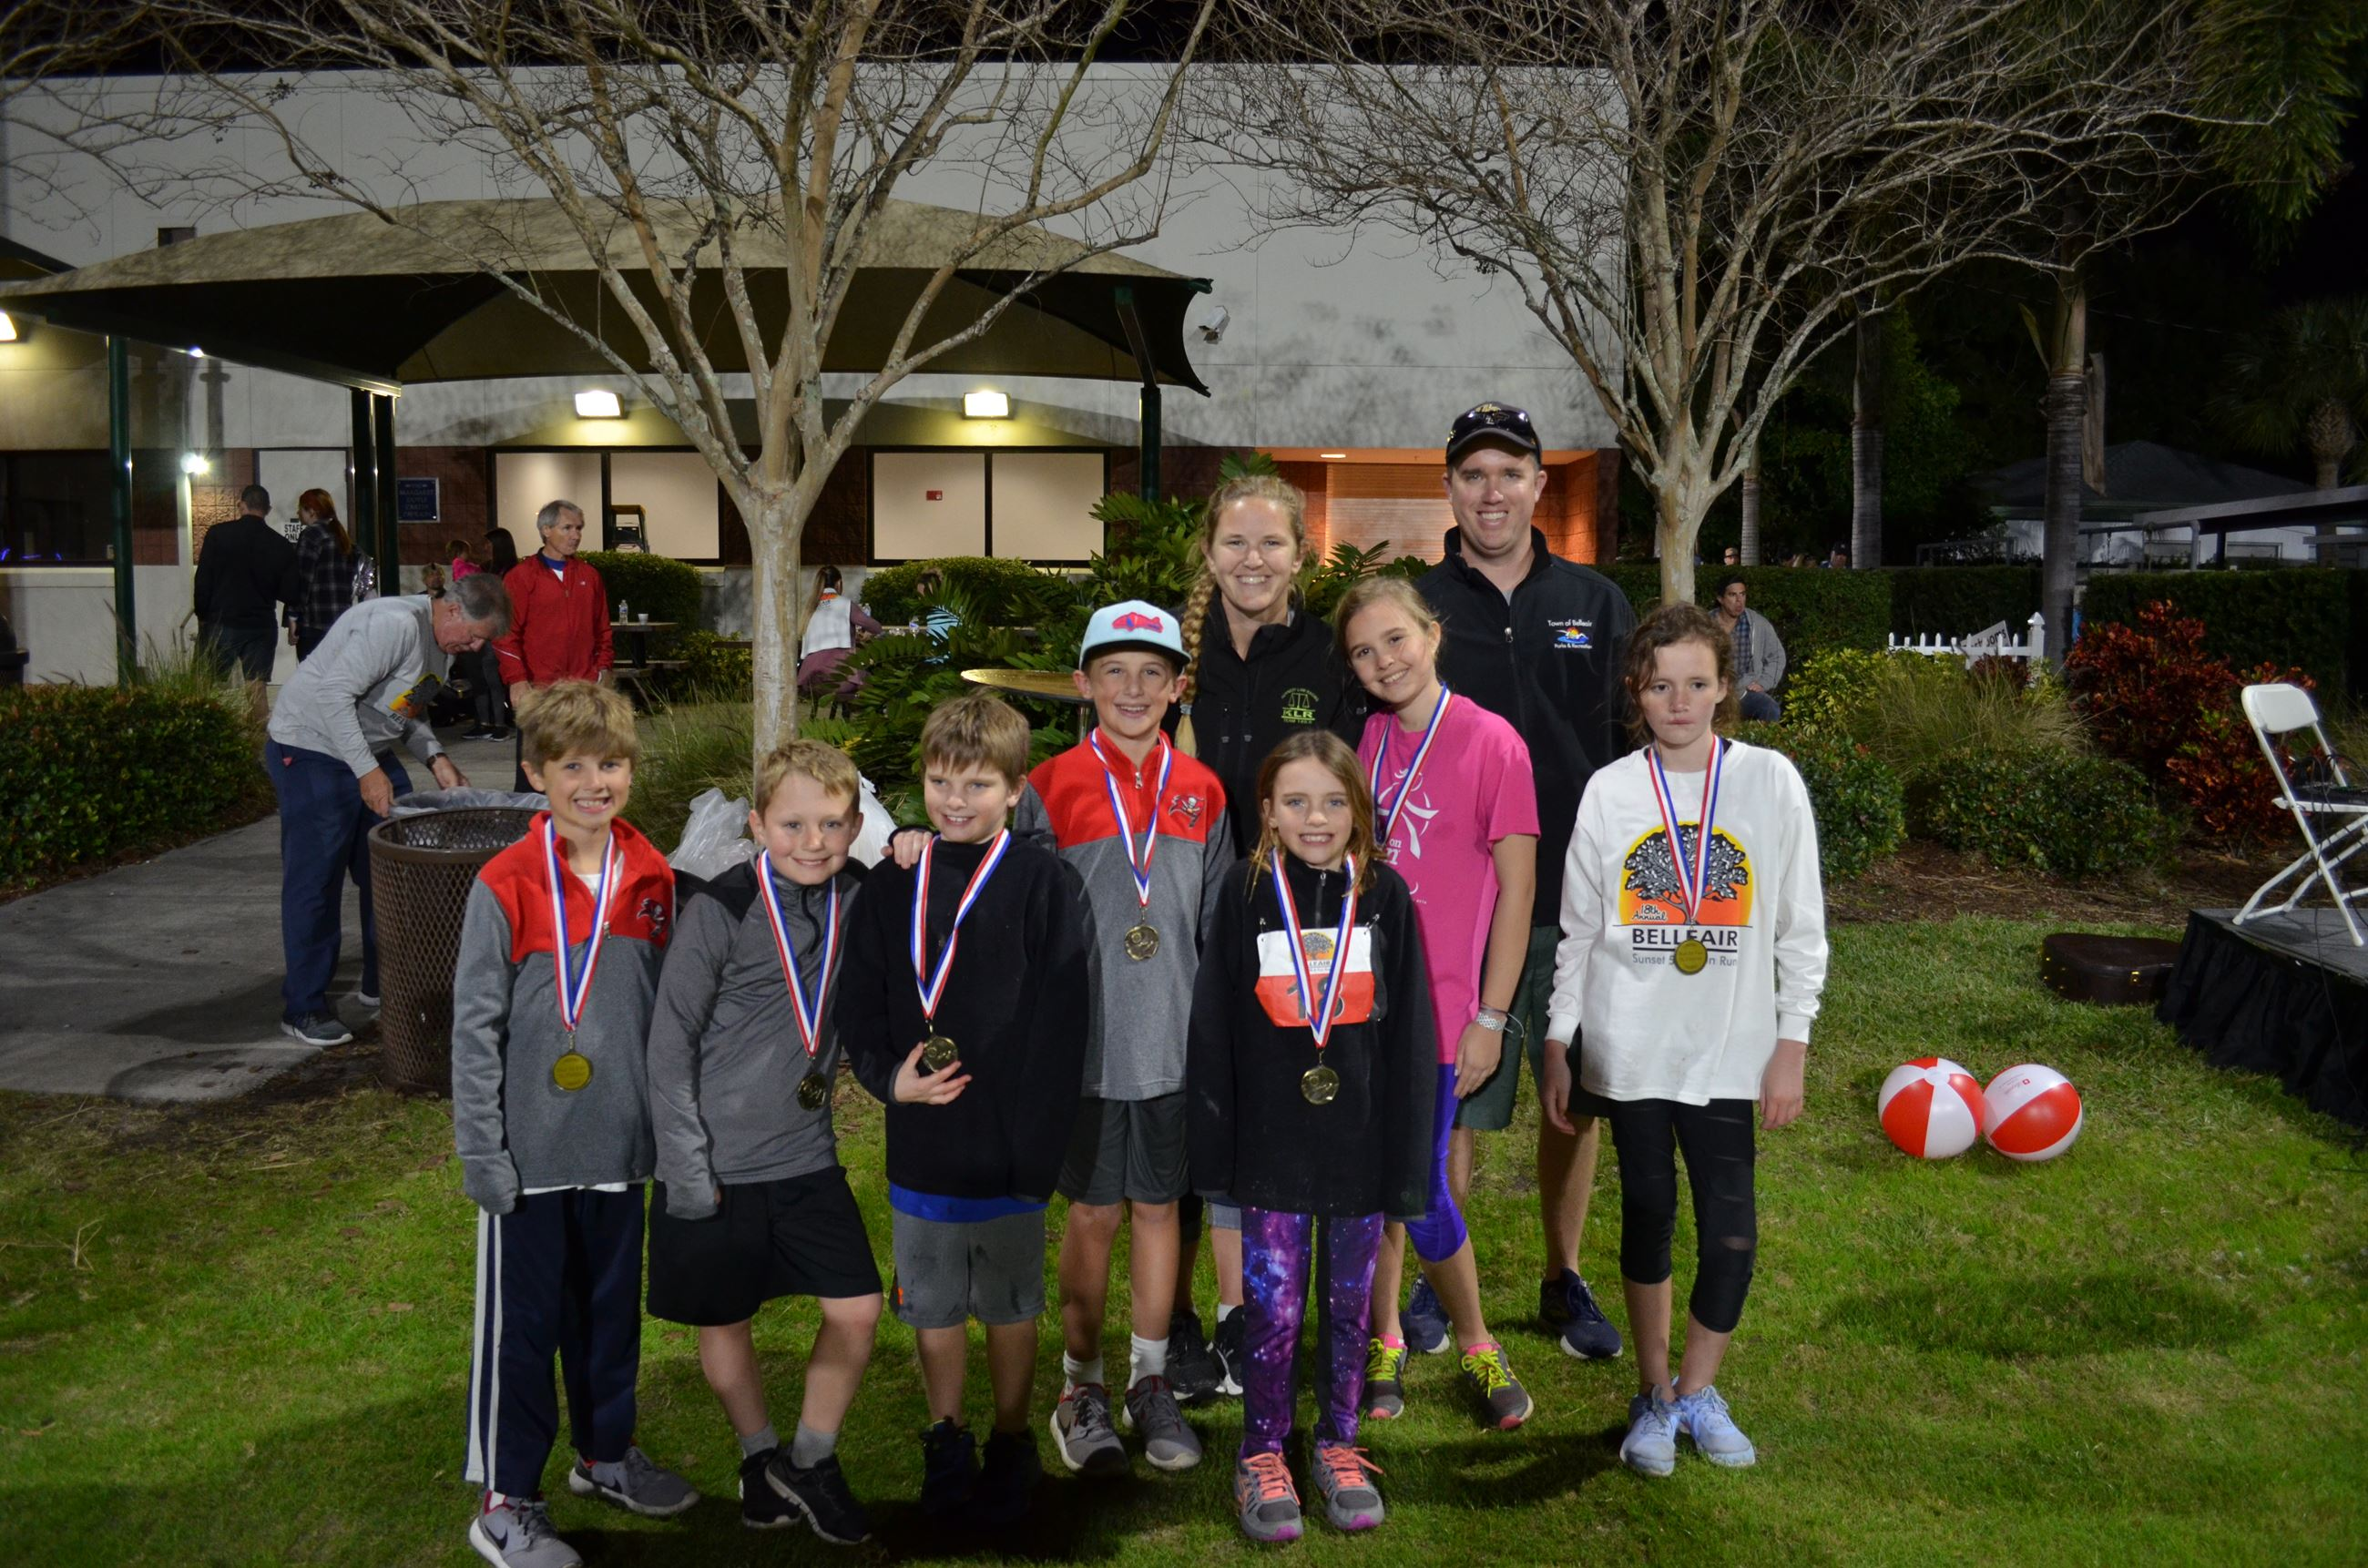 A group of seven children and two adults smile with their medals after completing a 5K race.